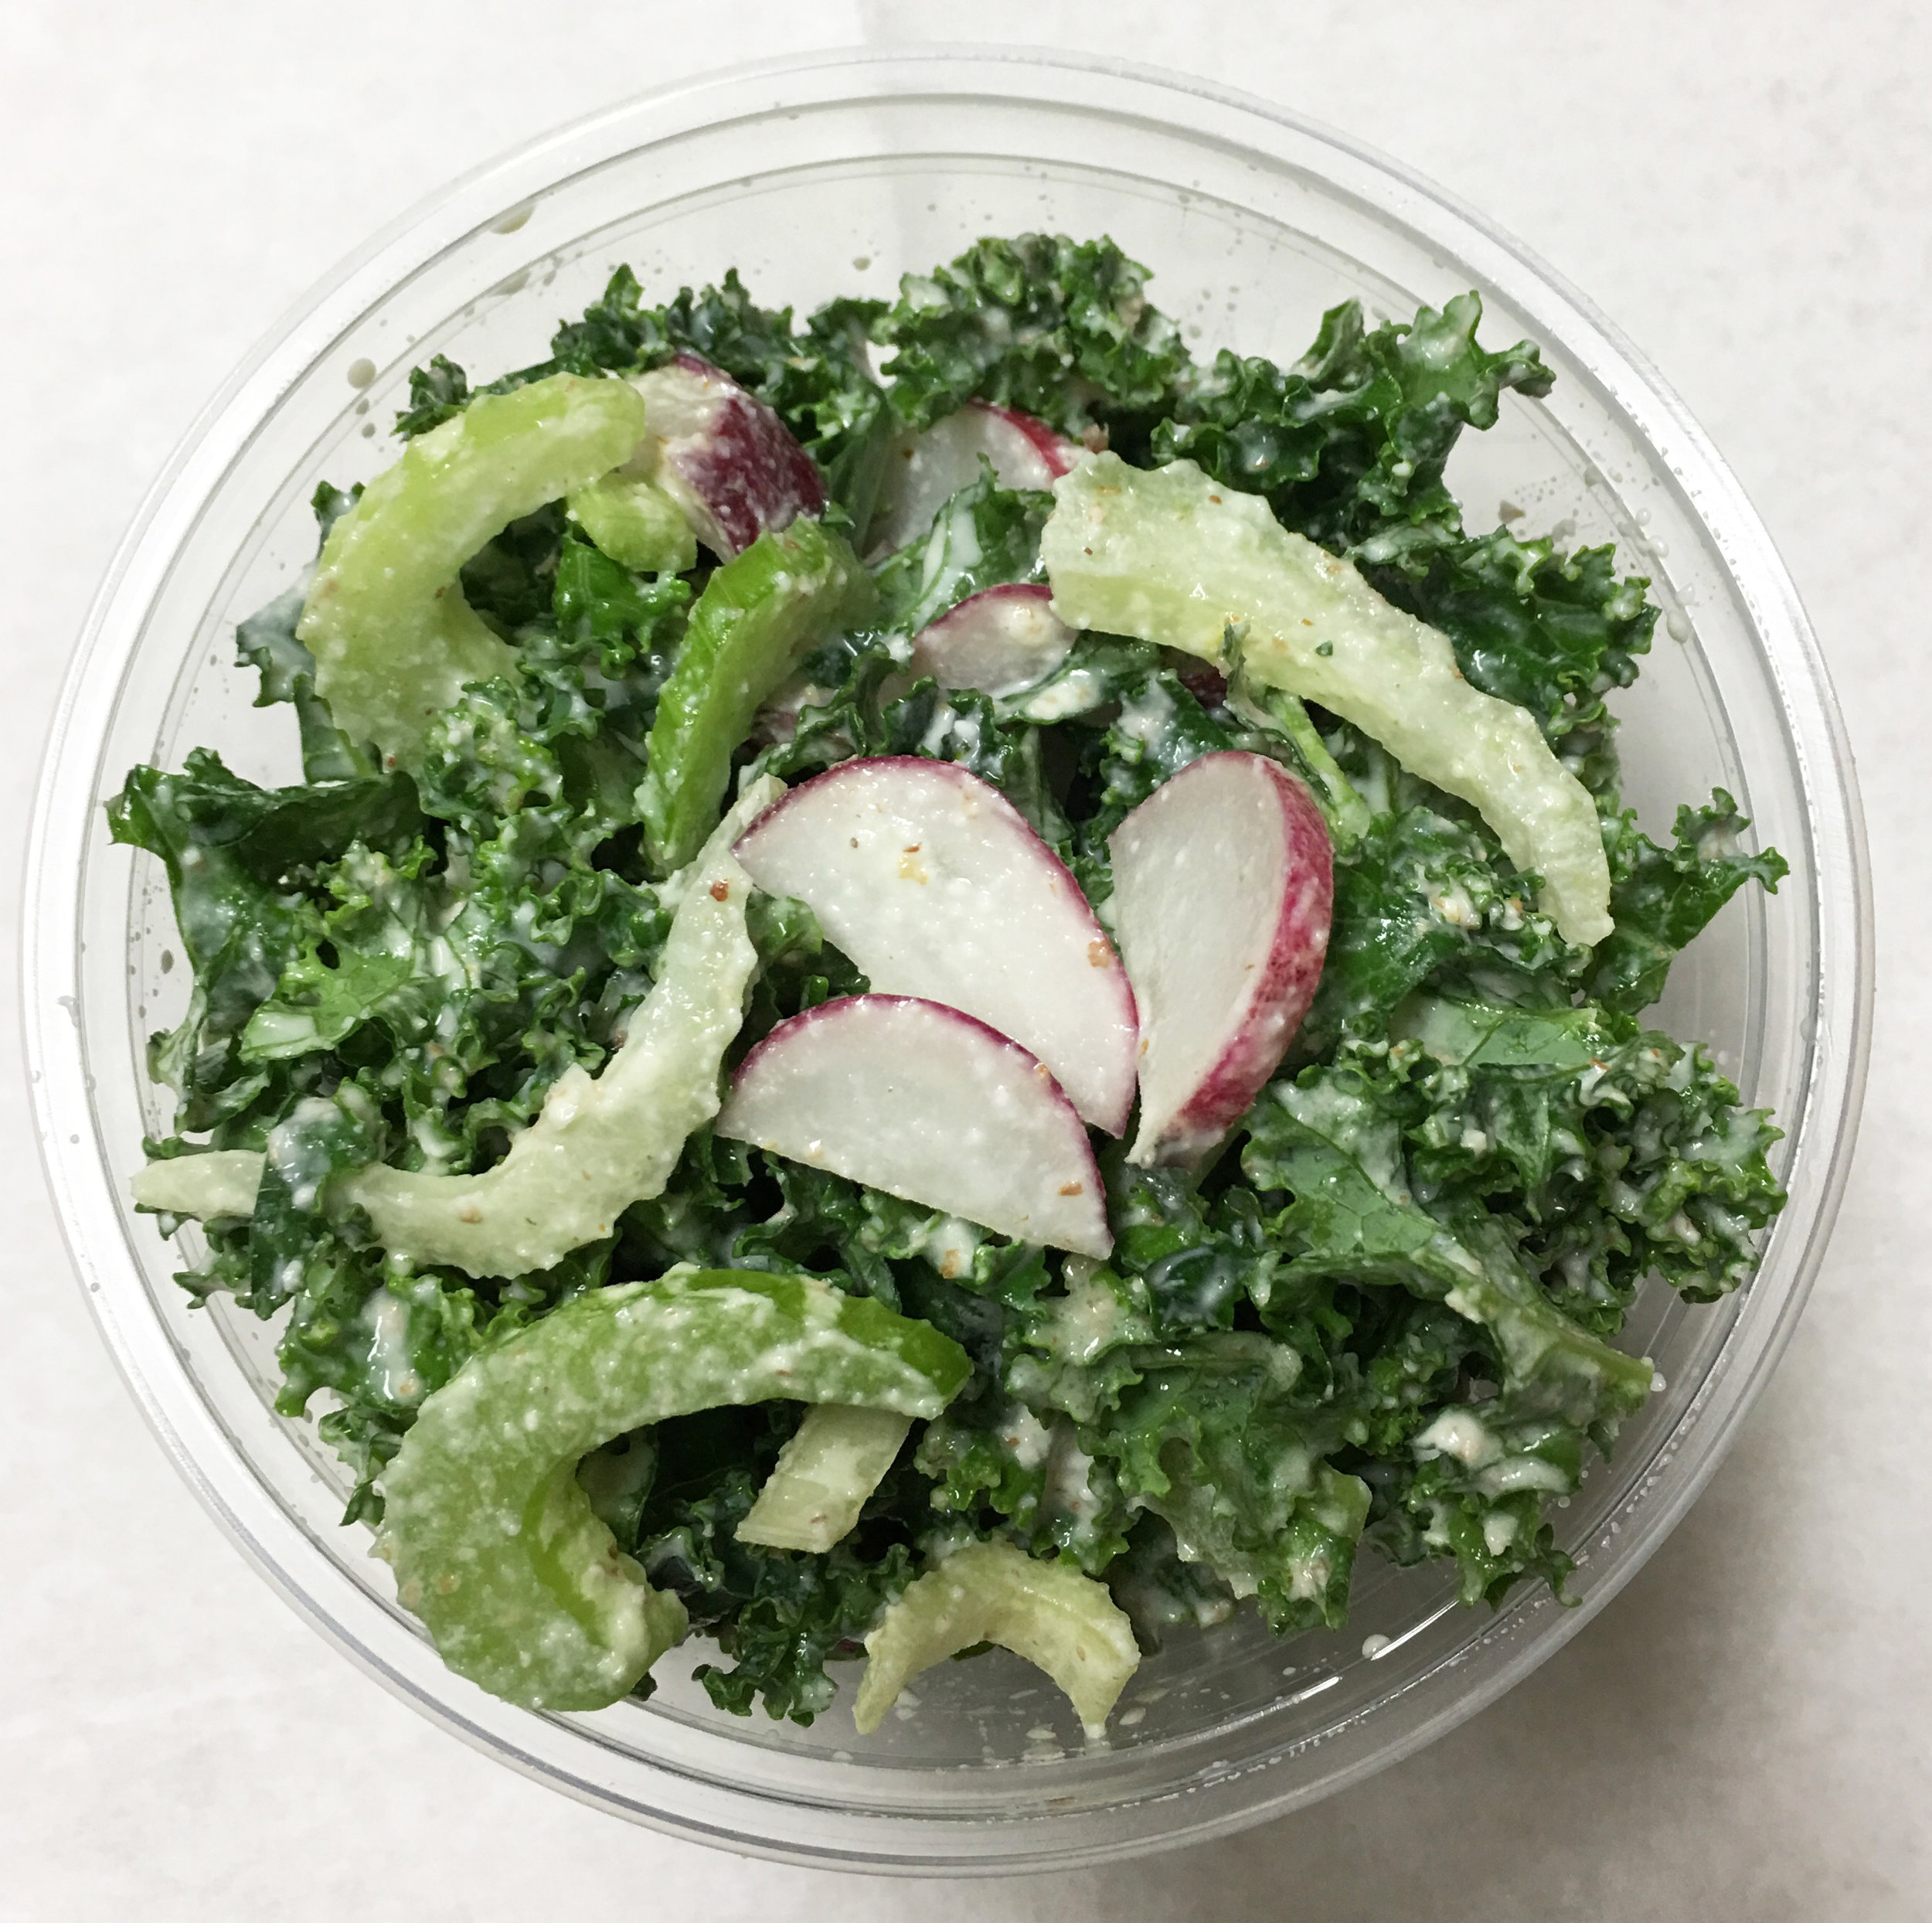 Curly kale salad with red radish, celery and almond cream dressing. (Please note since the dressing this week is already on the salad you will not receive a separate container of dressing.)